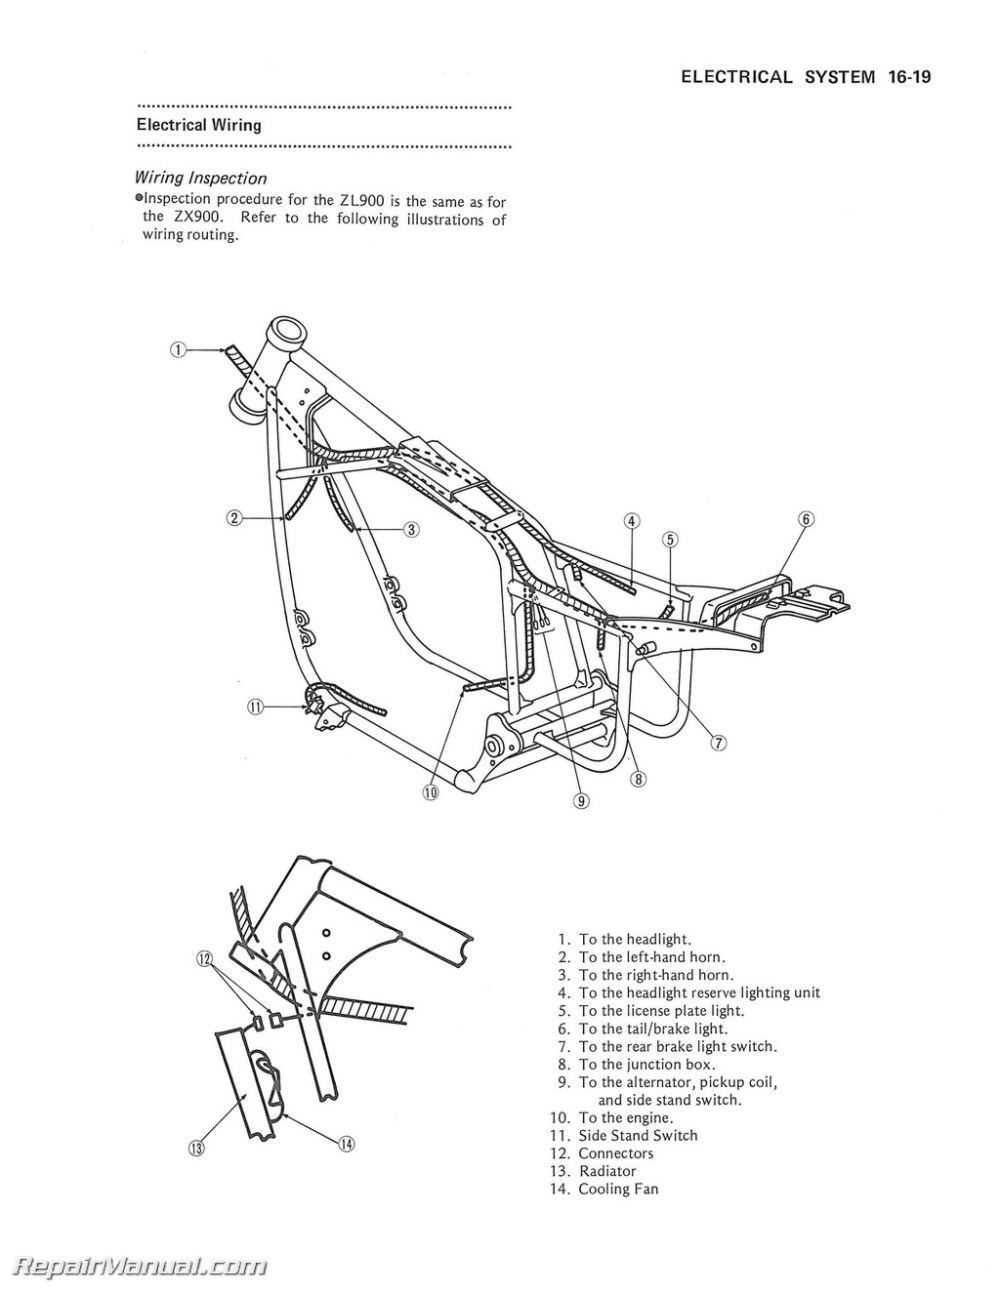 medium resolution of 1985 1988 kawasaki zl900 zl1000 eliminator motorcycle service manual supplement